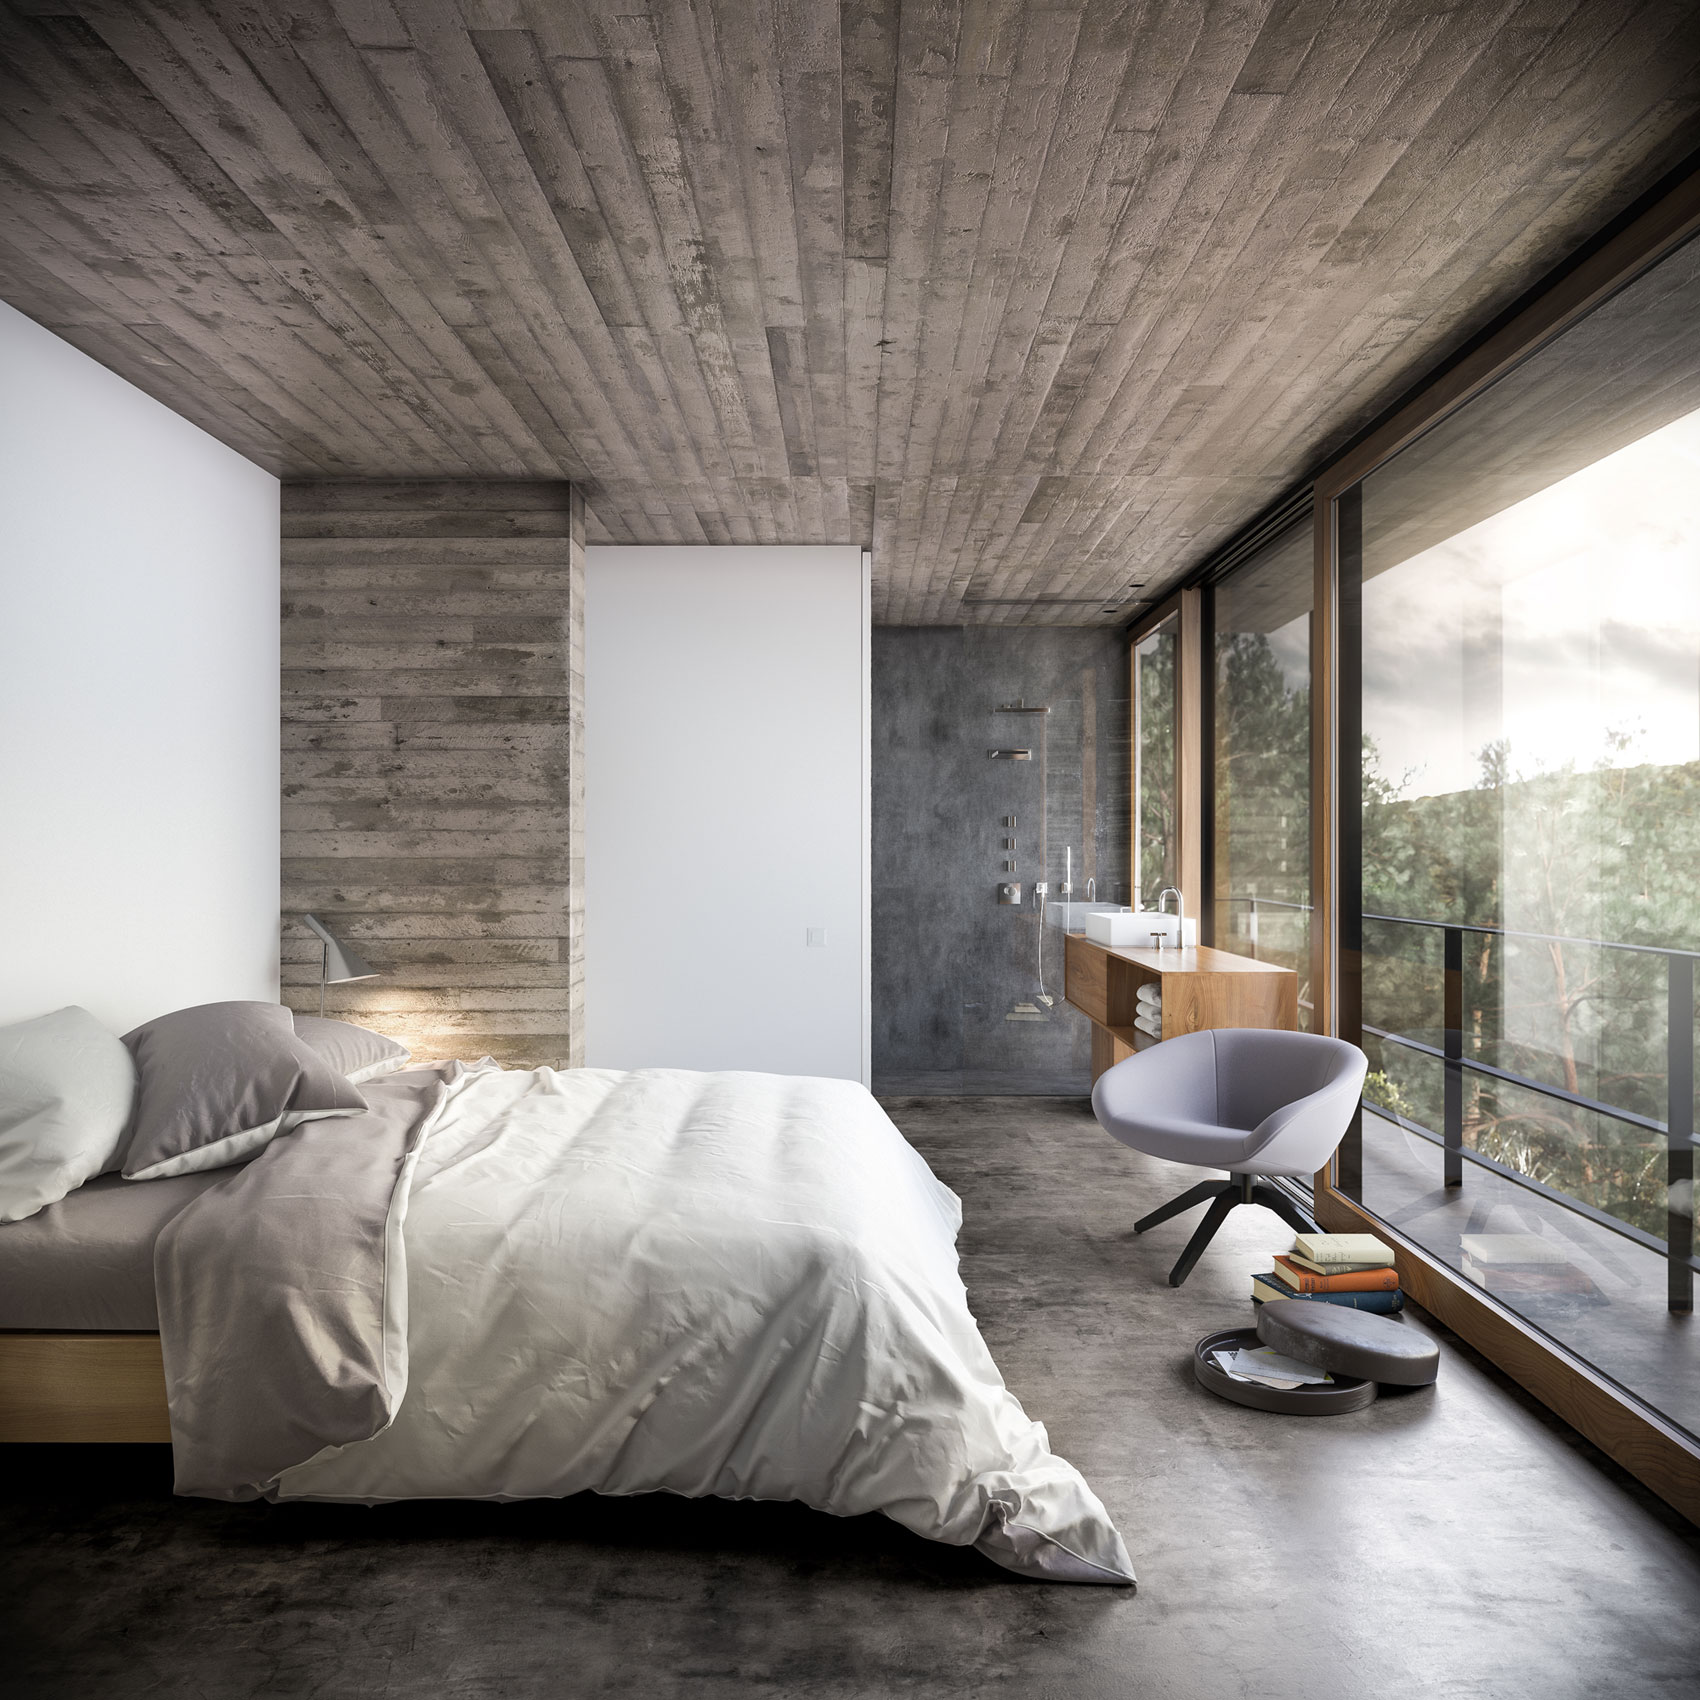 100 Beautiful Bedrooms And Their Dreamy Interior Decors: nature bedroom